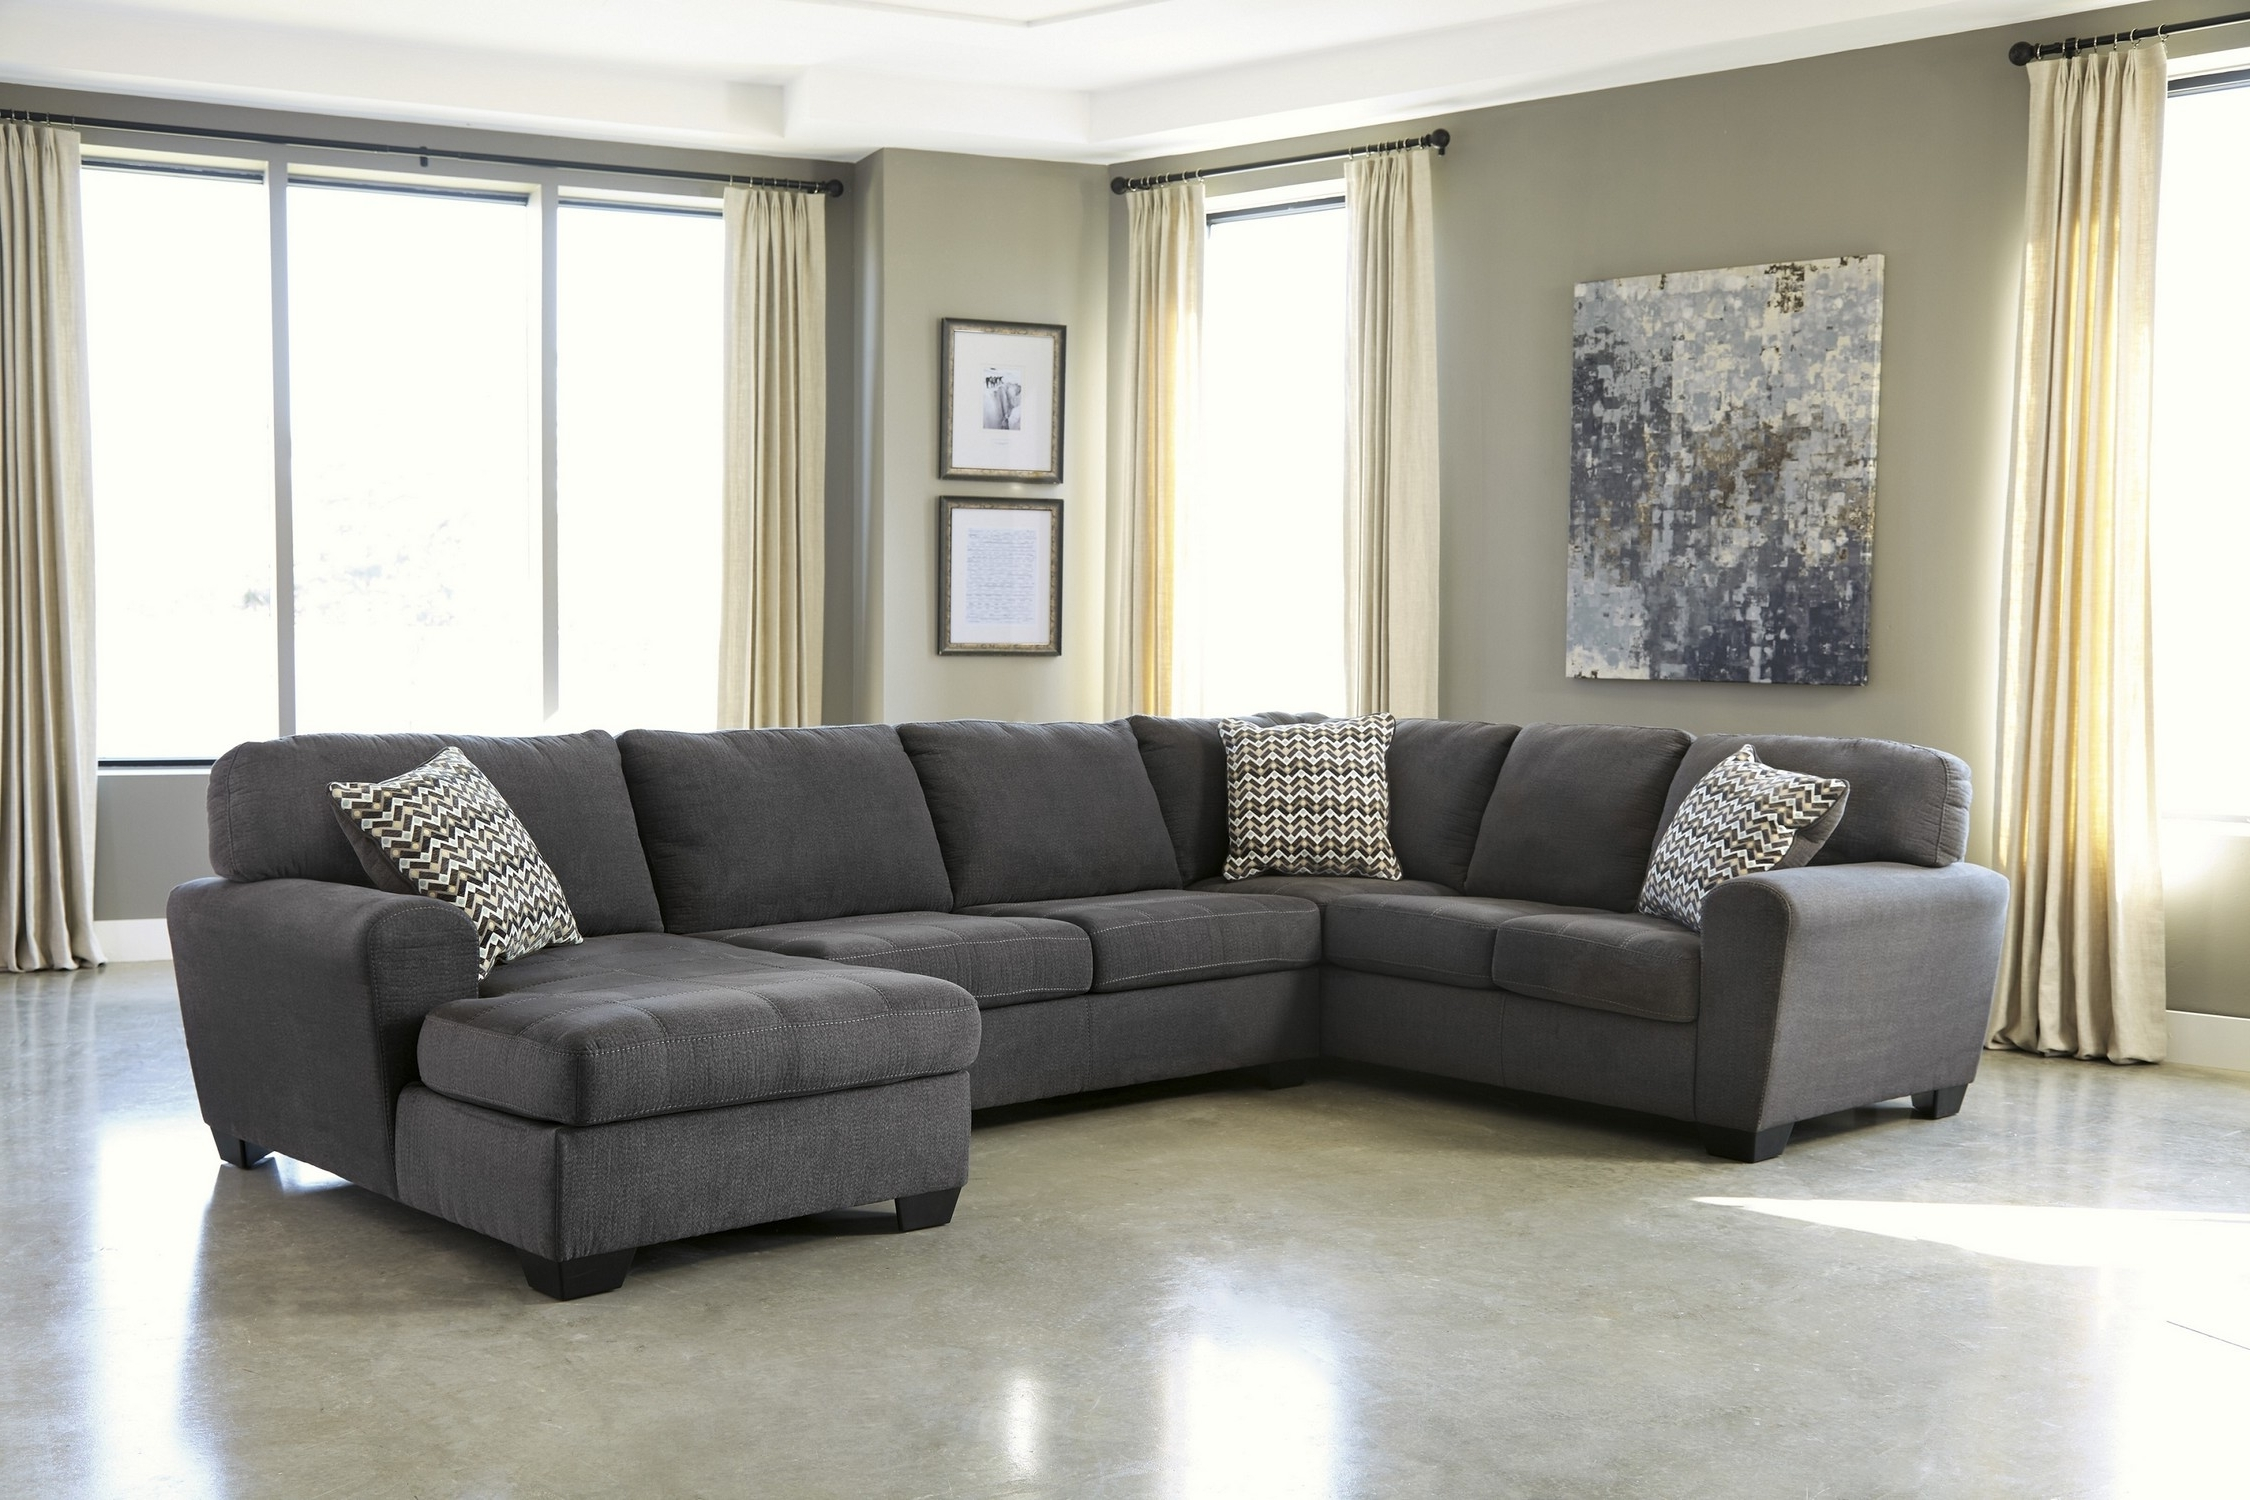 Alenya 3 Piece Sectional Quartz Fabric Reclining Sectional Grey Throughout Widely Used Gray Sectional Sofas With Chaise (View 3 of 15)